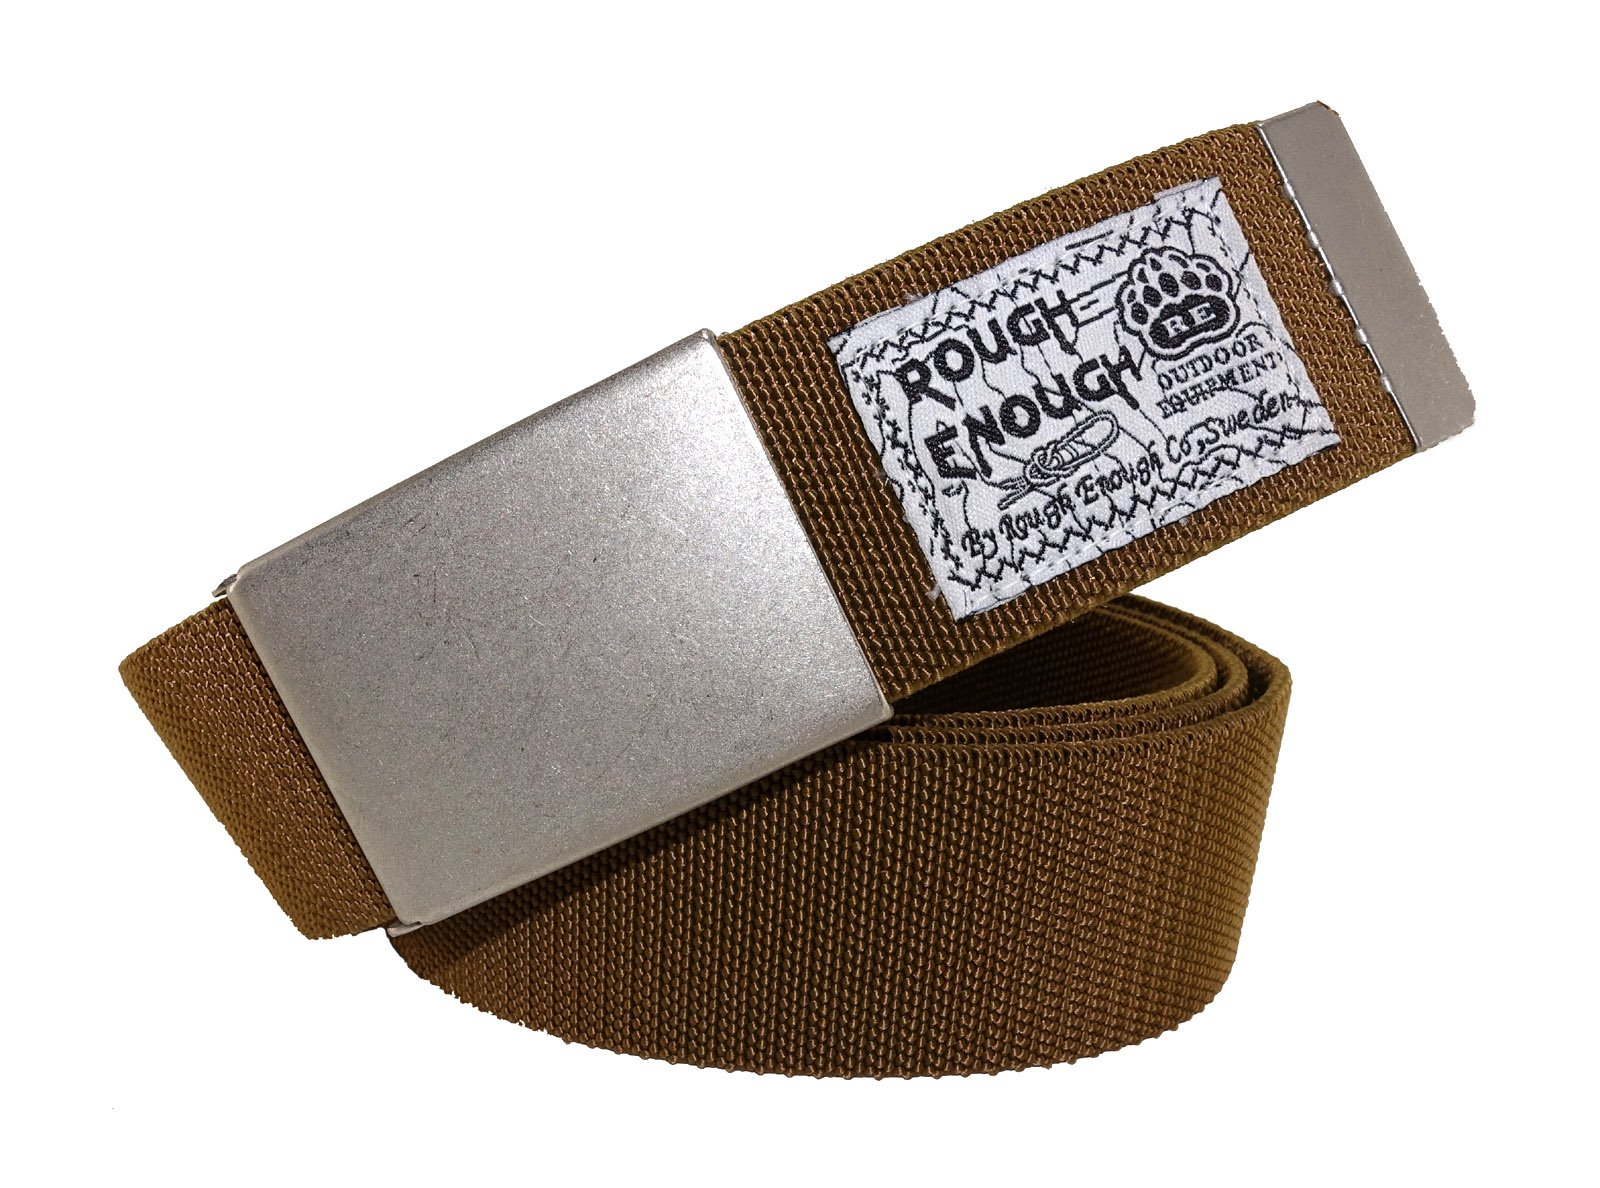 ROUGH ENOUGH Heavy Duty Elastic Nylon Reinforced Military Style Tactical Web Belt Strap with Flip Top Antique Silver Metal Buckle for Teens Men Casual Khaki Brown